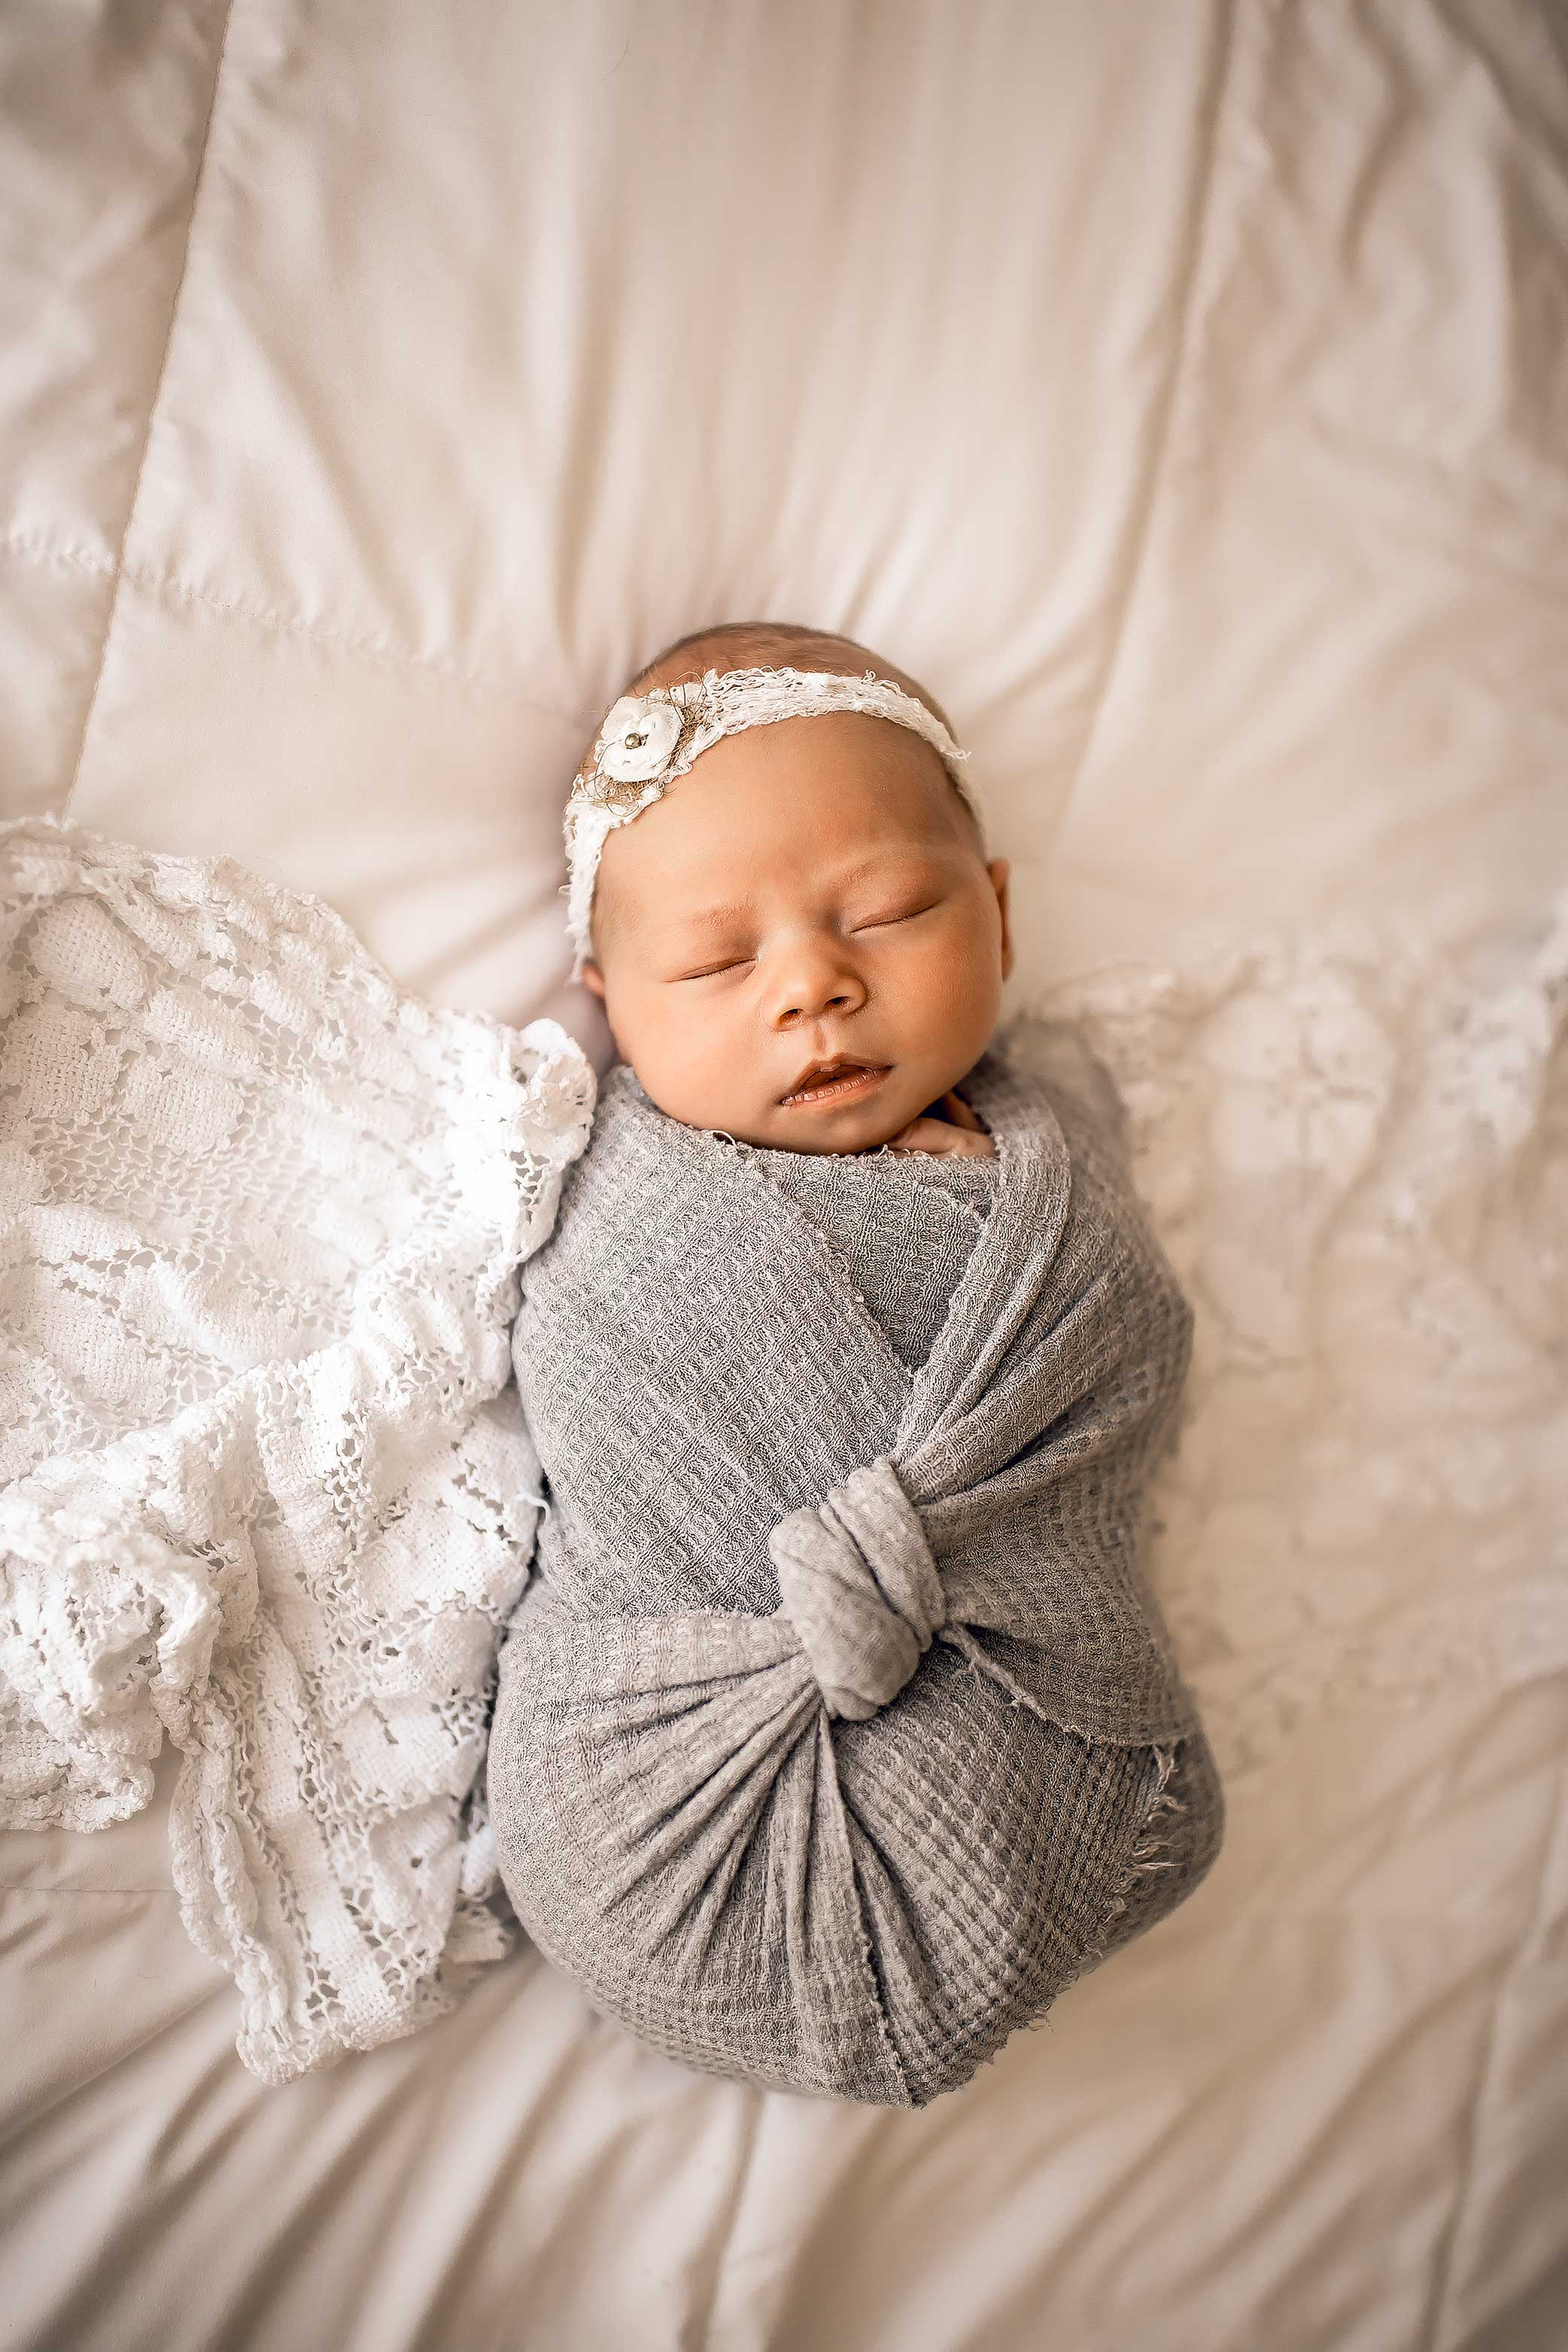 shelby-schiller-photography-studio-newborn-college-station-girl-38.jpg